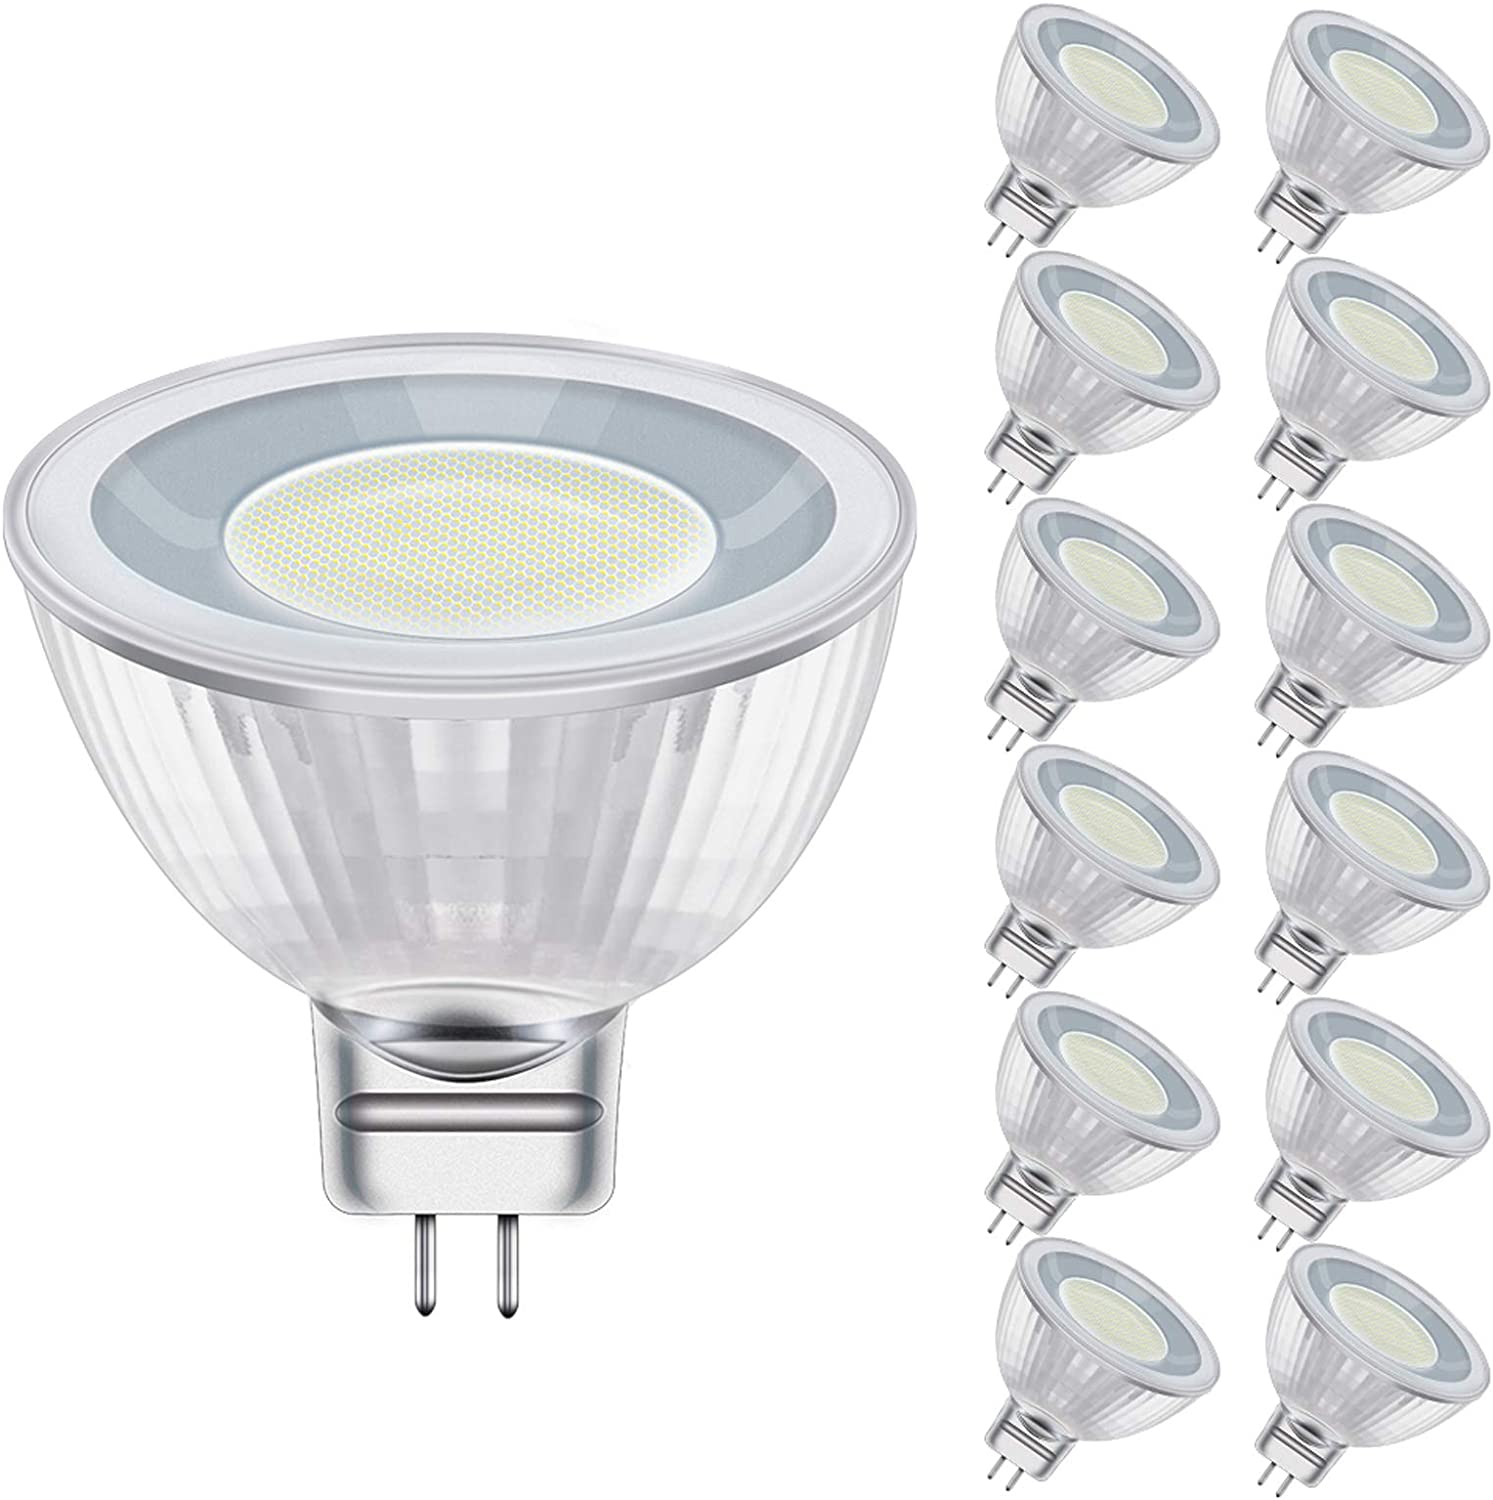 Dimmable MR16 LED Bulb, 6W=50W Equivalent LED Halogen Replacement Bulbs, CRI 90+, GU5.3 Bi-Pin Base, 3000K Warm White, Energy Star and UL Listed,12 Pack